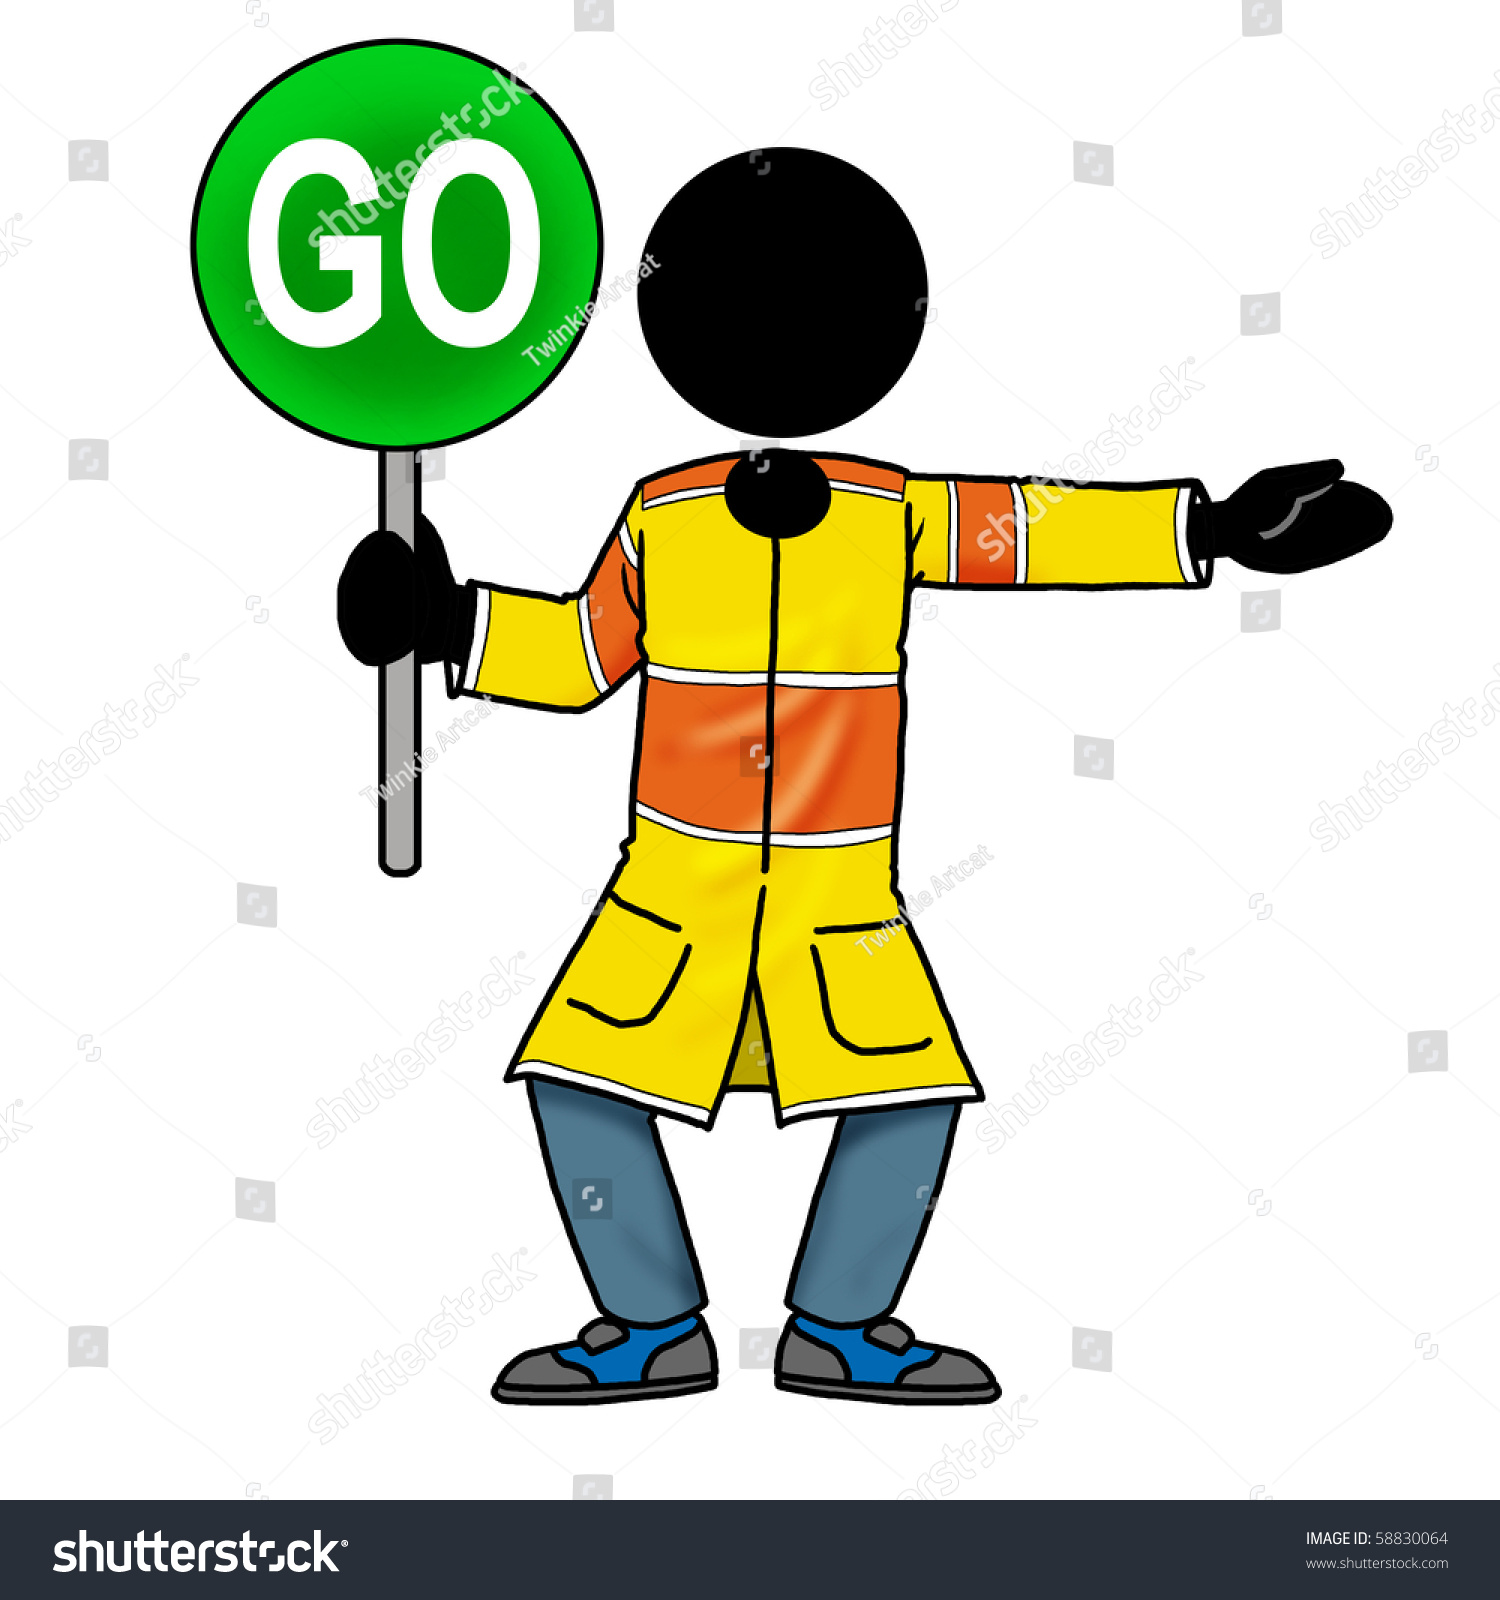 cartoon action icon of a silhouette man holding a go sign